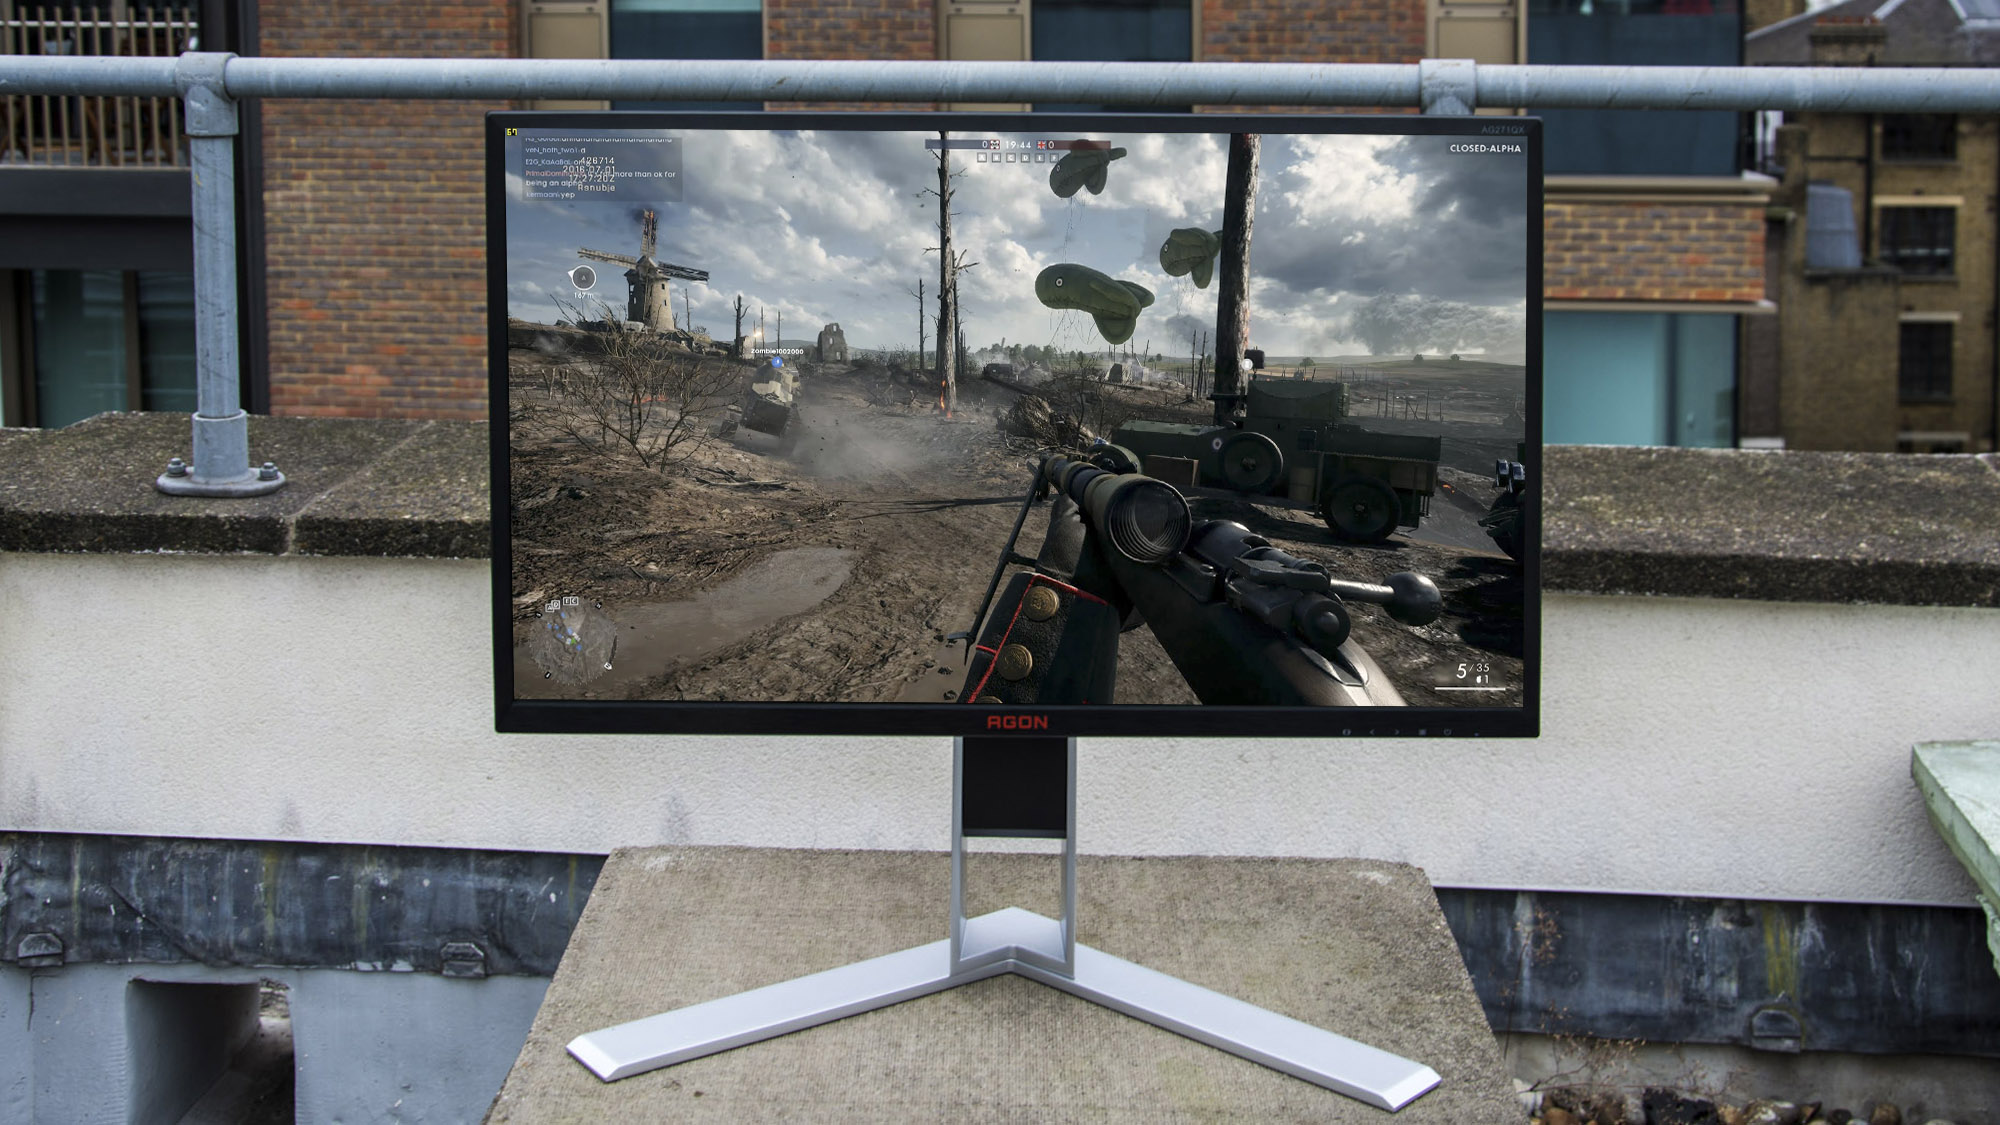 how to choose center monitor for main gaming display